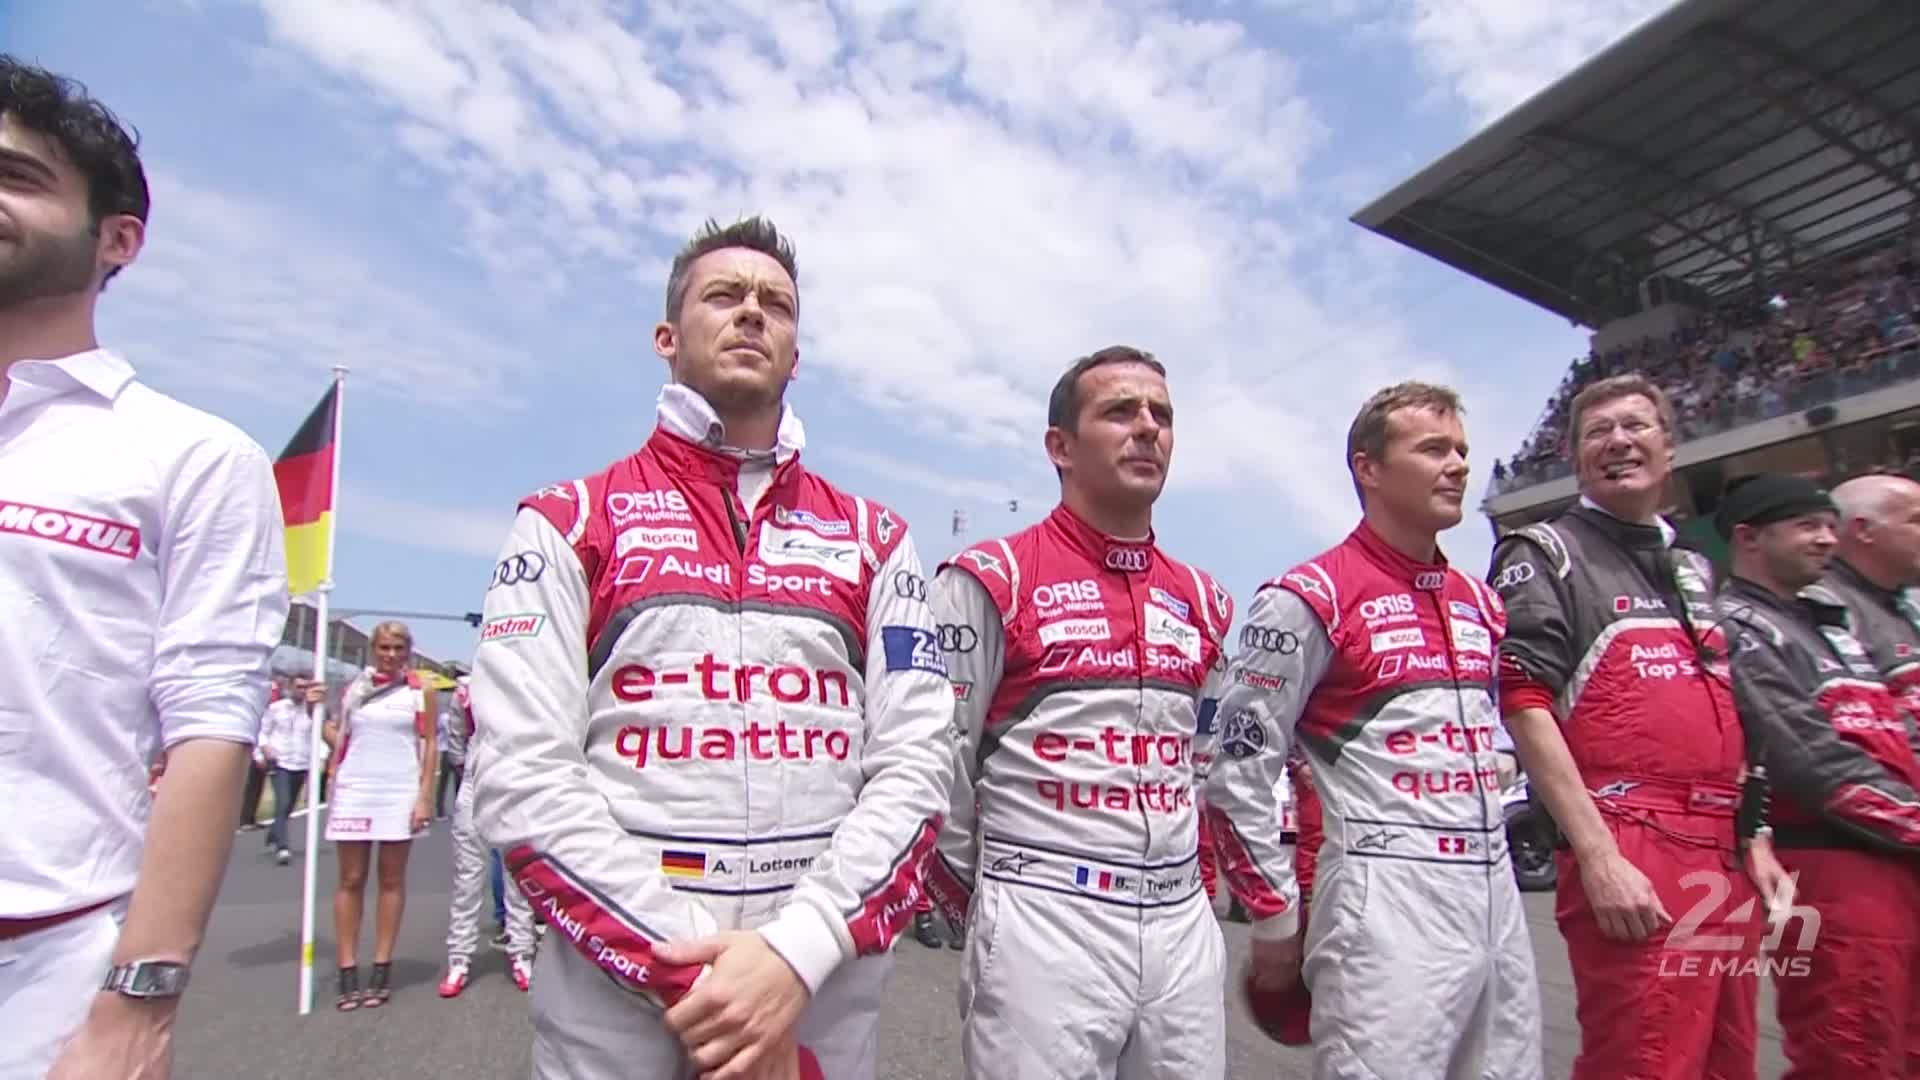 60 Seconds of Audi Sport 40/2015 - WEC Le Mans, Race start